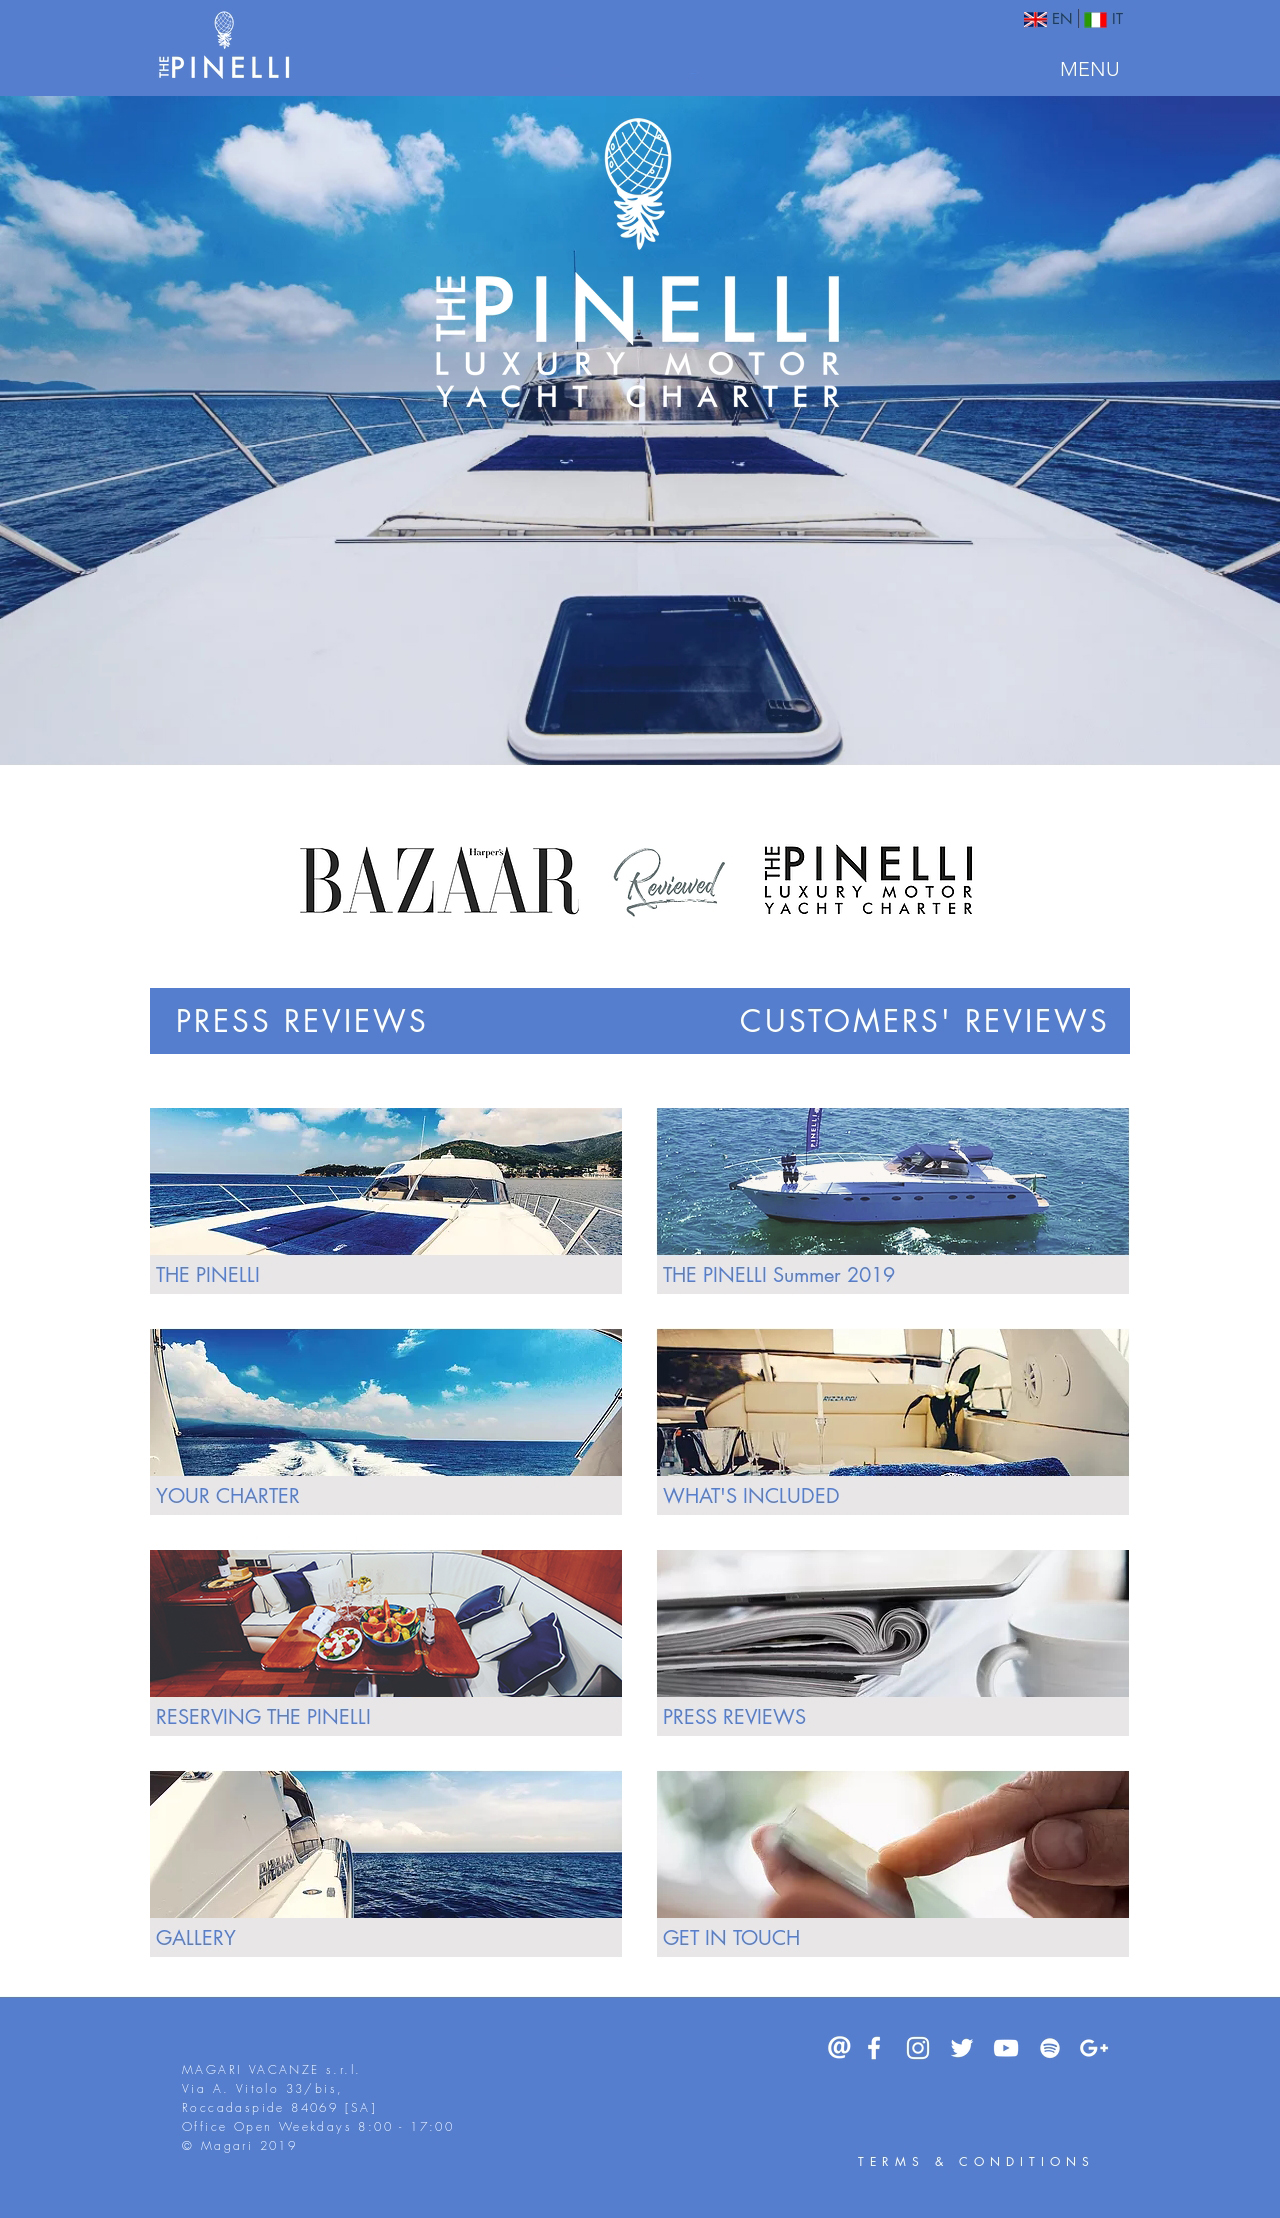 The Pinelli website